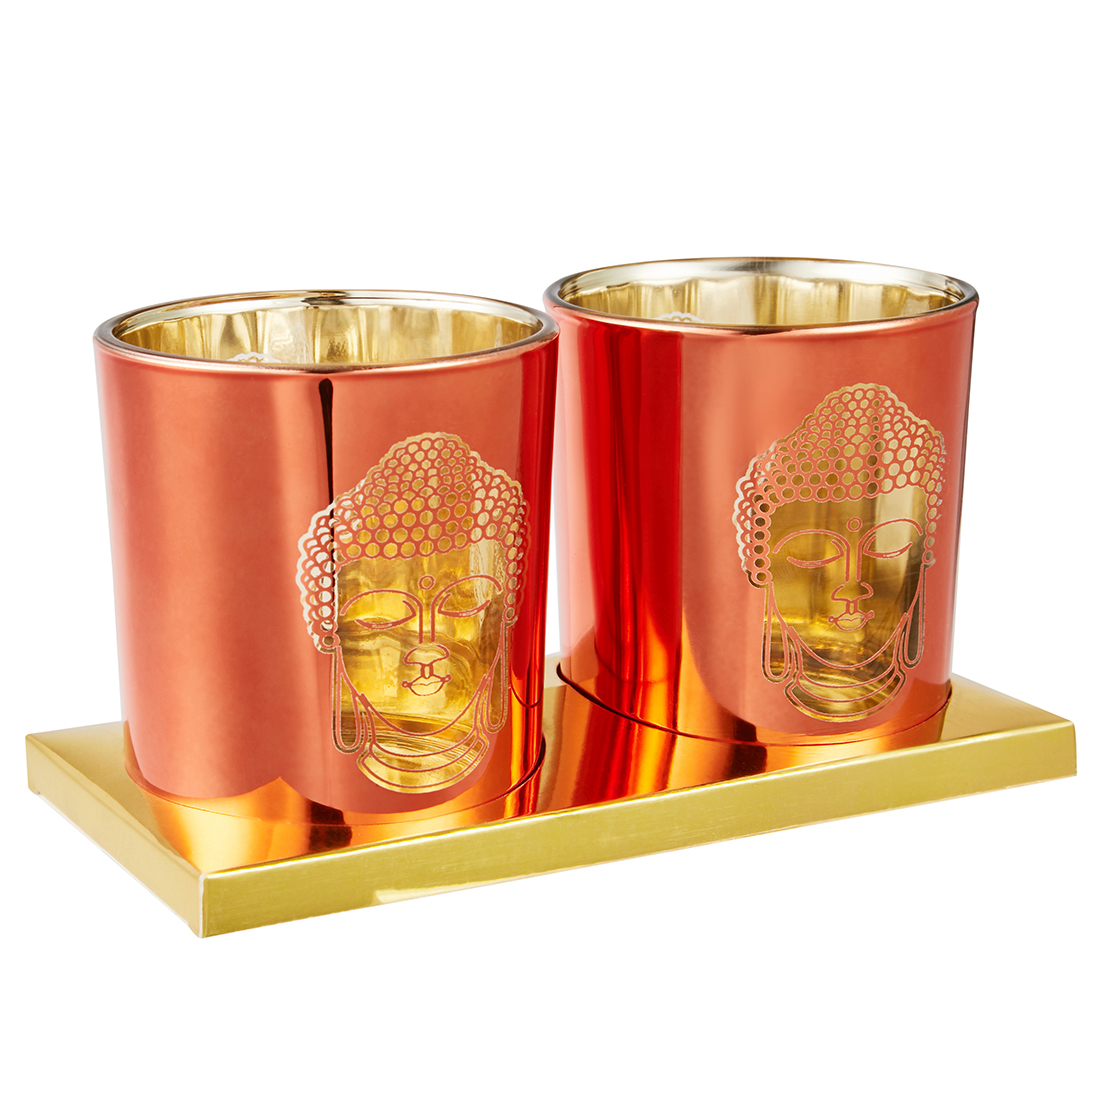 Zahara Small Set Of Two Orange Candle Holder With Etched Buddha Face Metal Candle Holders in Orange Colour by Living Essence